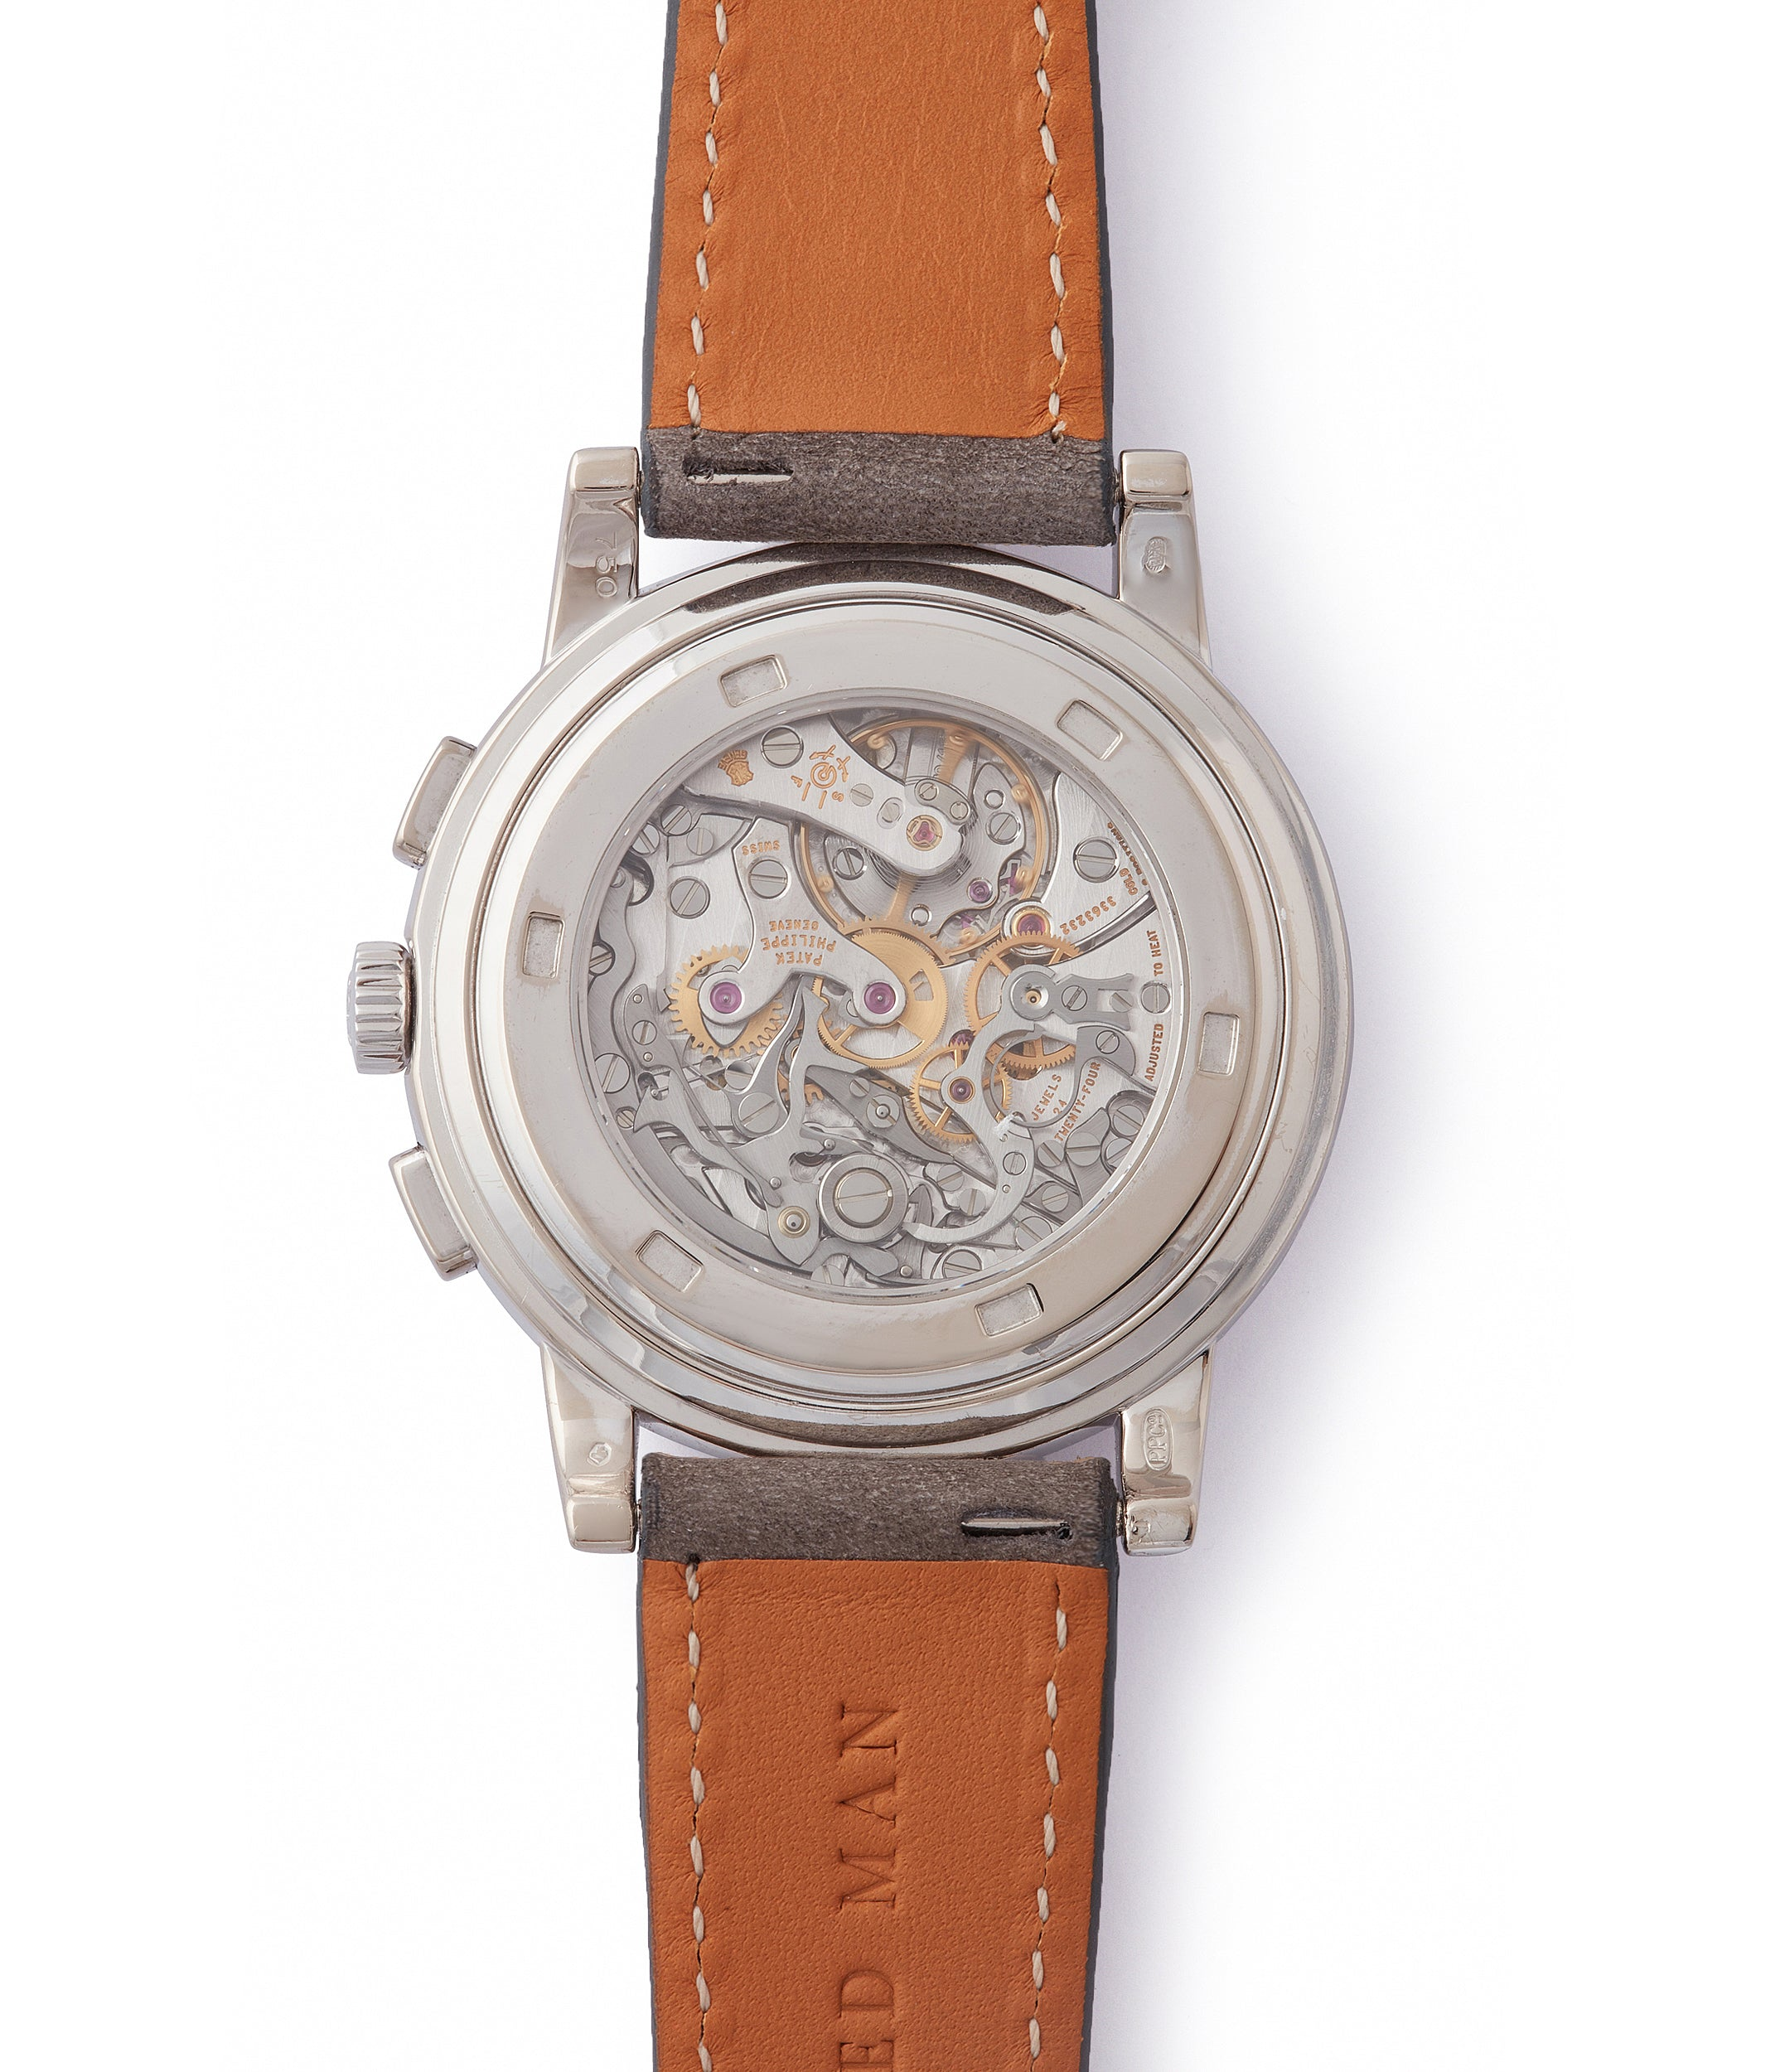 CH27-70 manual-winding Patek Philippe 5070 Chronograph white gold dress watch for sale online at A Collected Man London UK specialist of rare watches